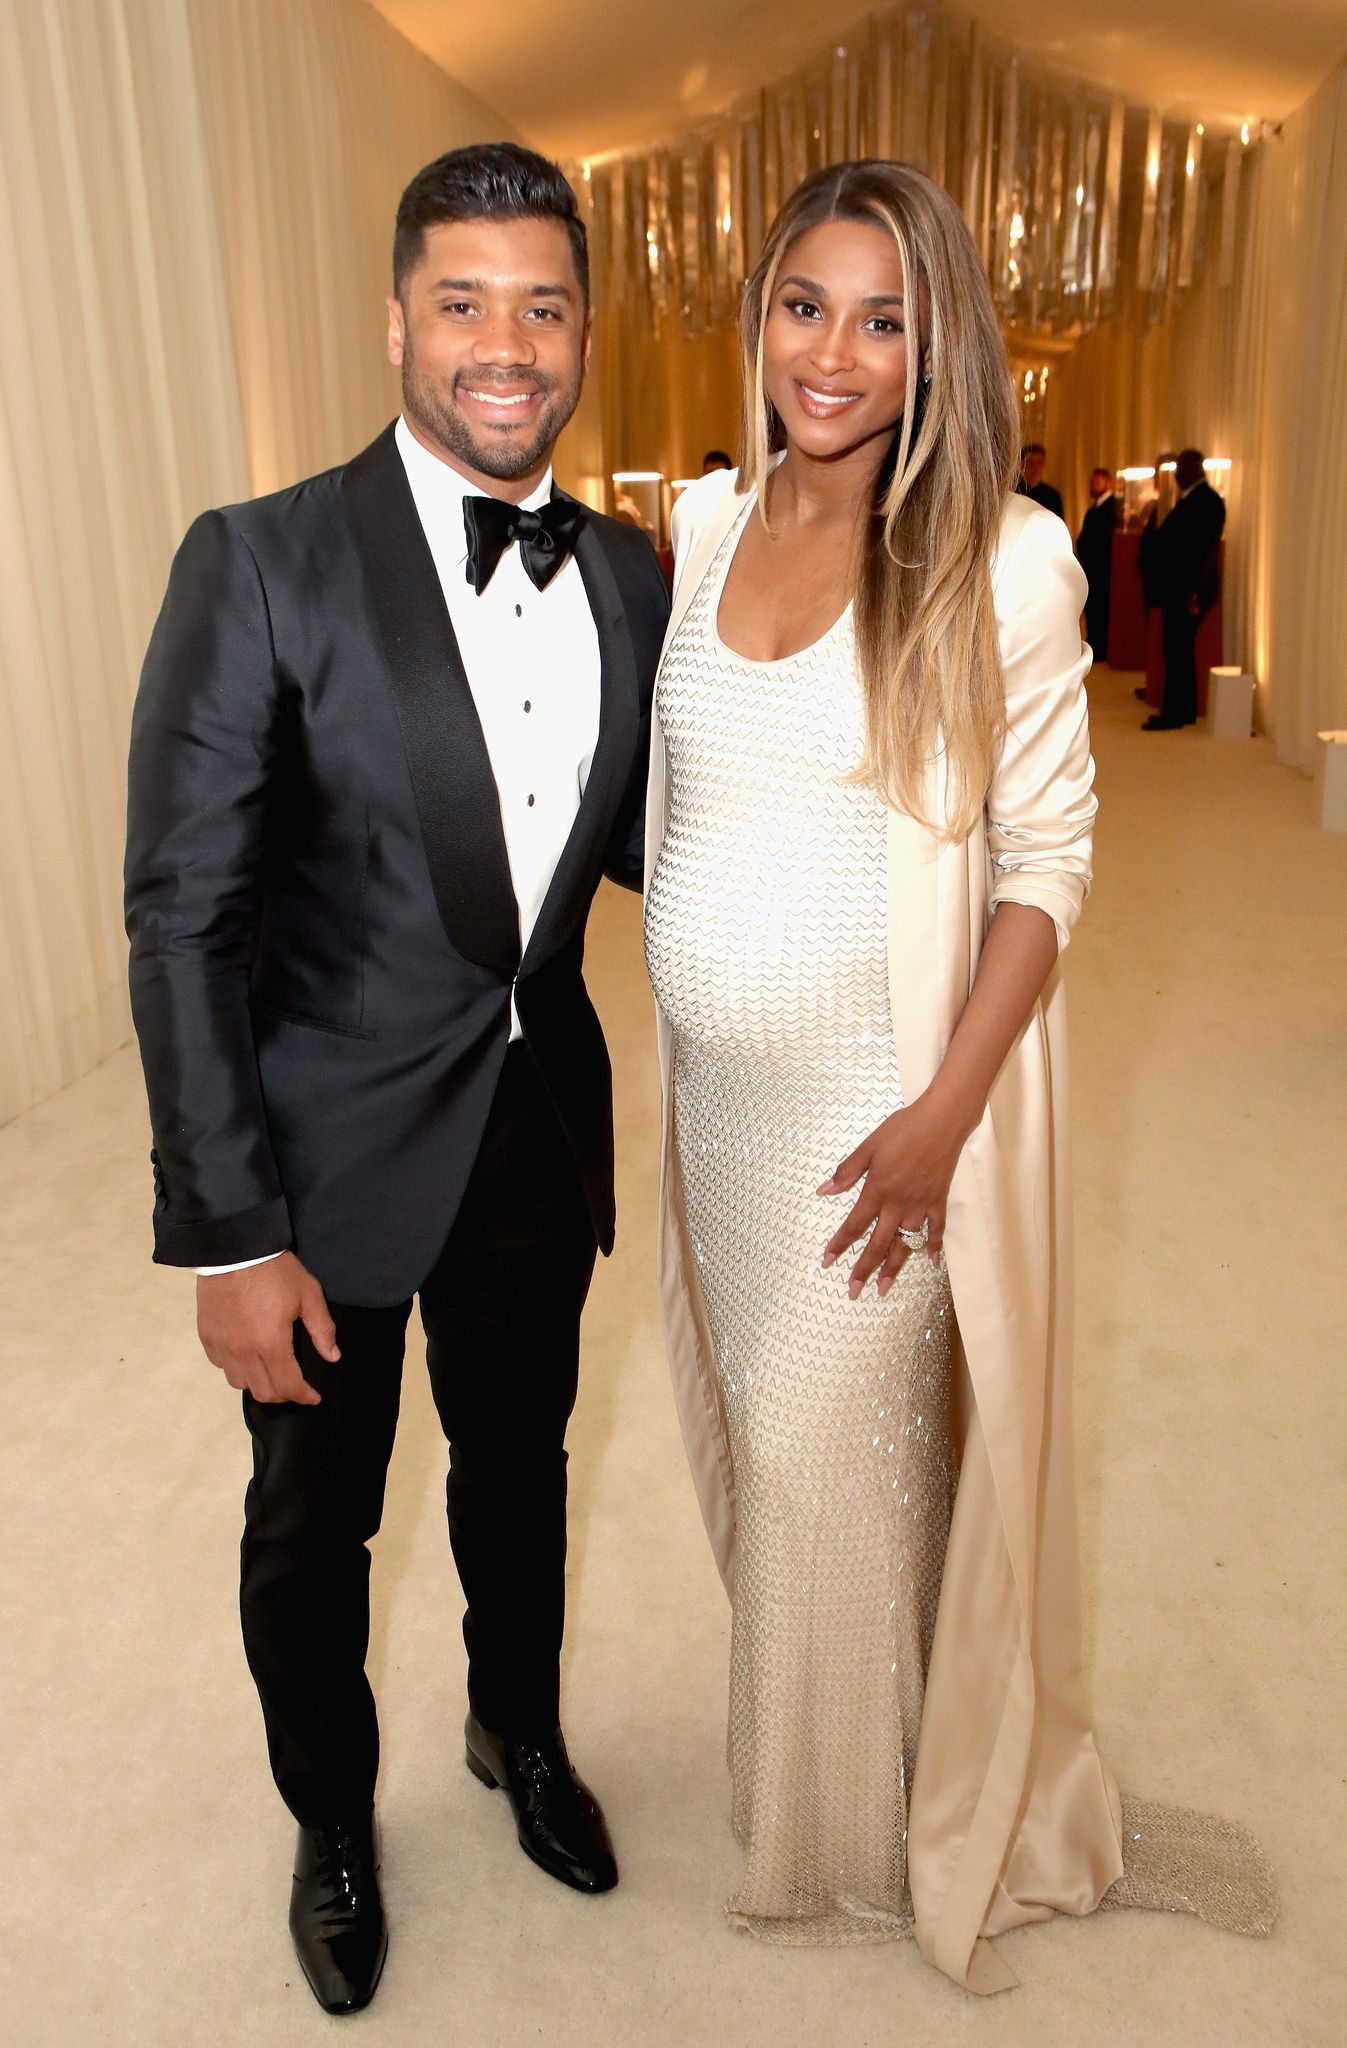 Russell Wilson and Ciara at the 25th Annual Elton John AIDS Foundation's Academy Awards Viewing Party in West Hollywood, Feb. 27, 2017 | Photo: Getty Images